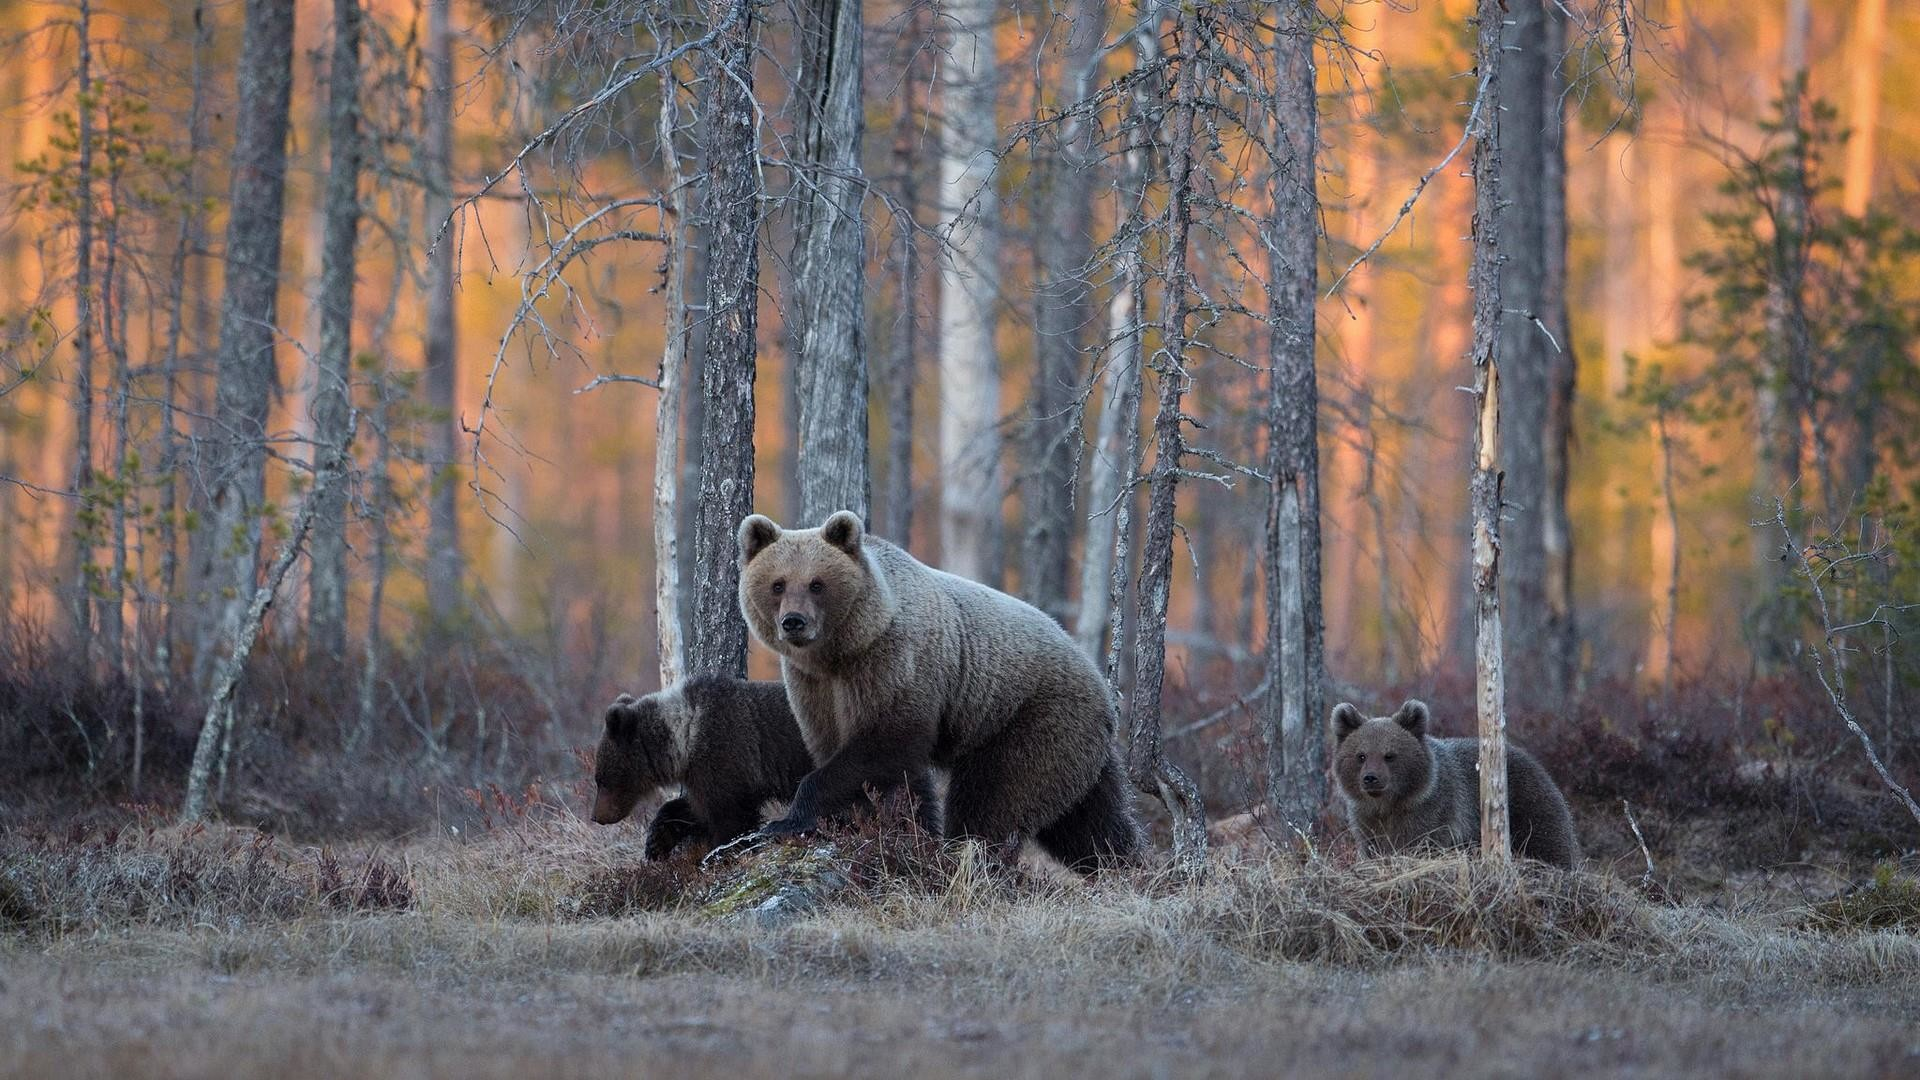 Res: 1920x1080, Grizzly Bear In The Pine Forest Wallpaper   Wallpaper Studio 10   Tens of  thousands HD and UltraHD wallpapers for Android, Windows and Xbox